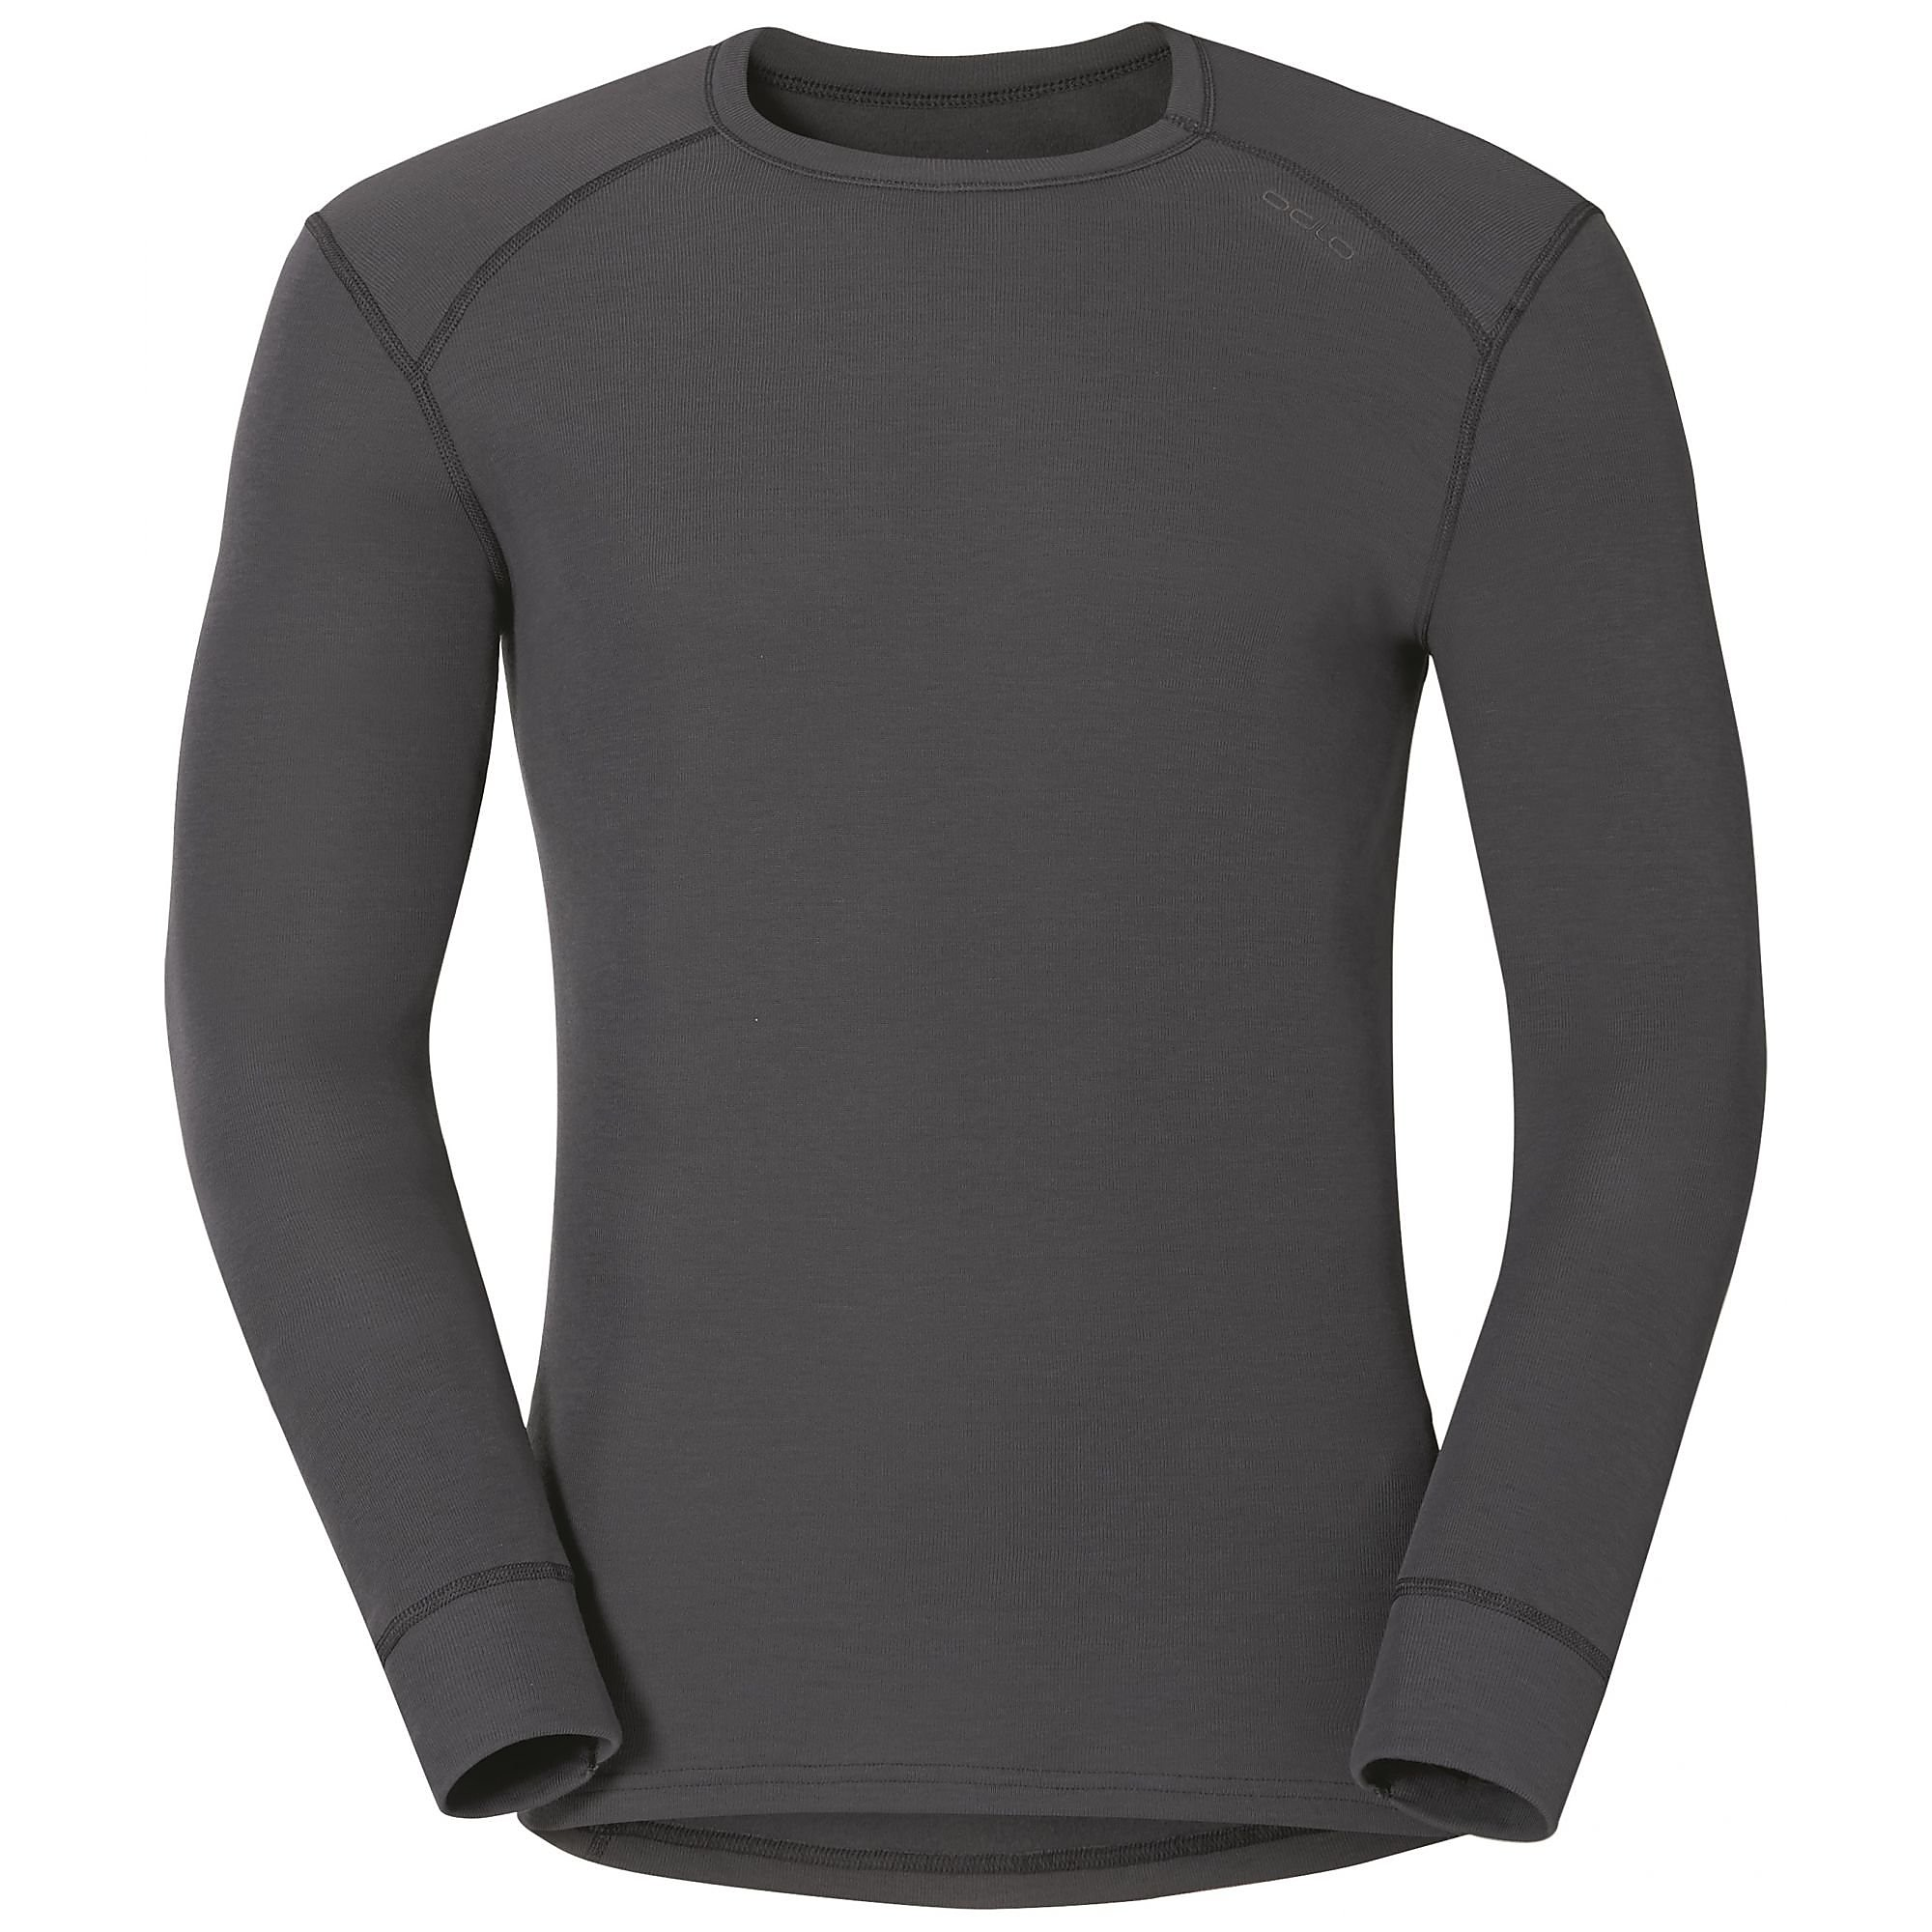 ODLO KITZBUHL THERMOSHIRT